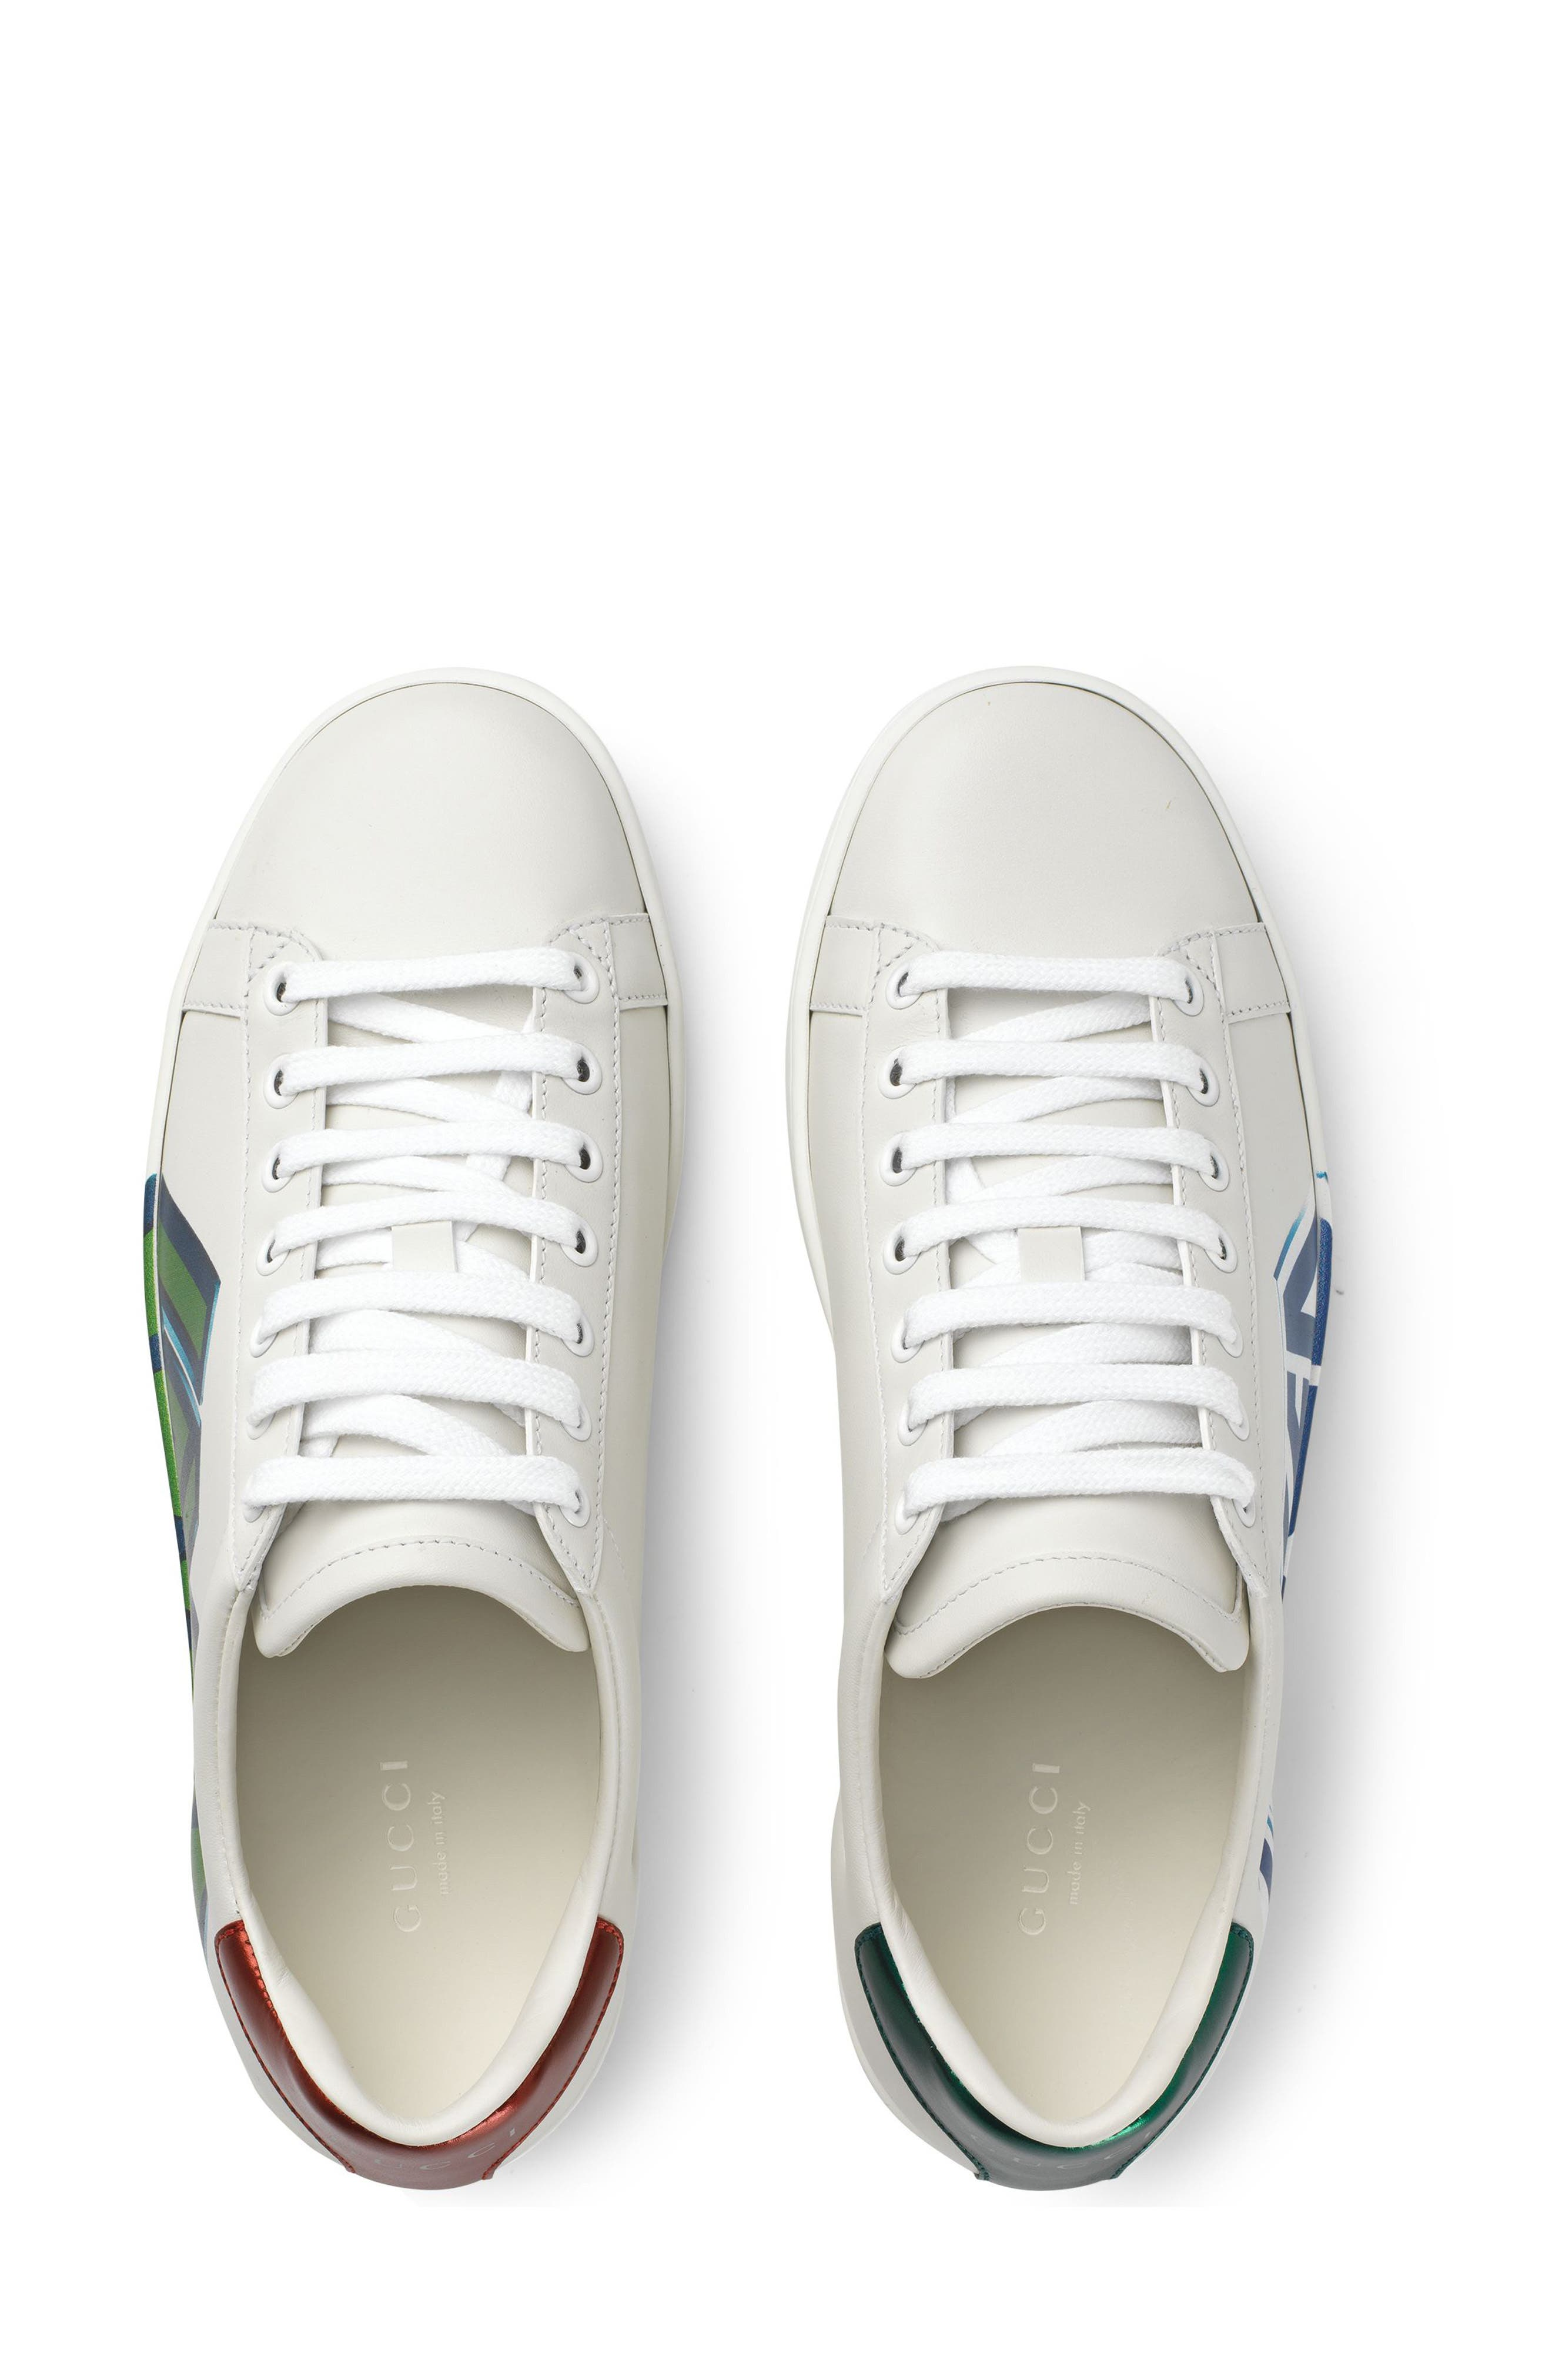 GUCCI,                             New Ace Loved Sneaker,                             Alternate thumbnail 4, color,                             WHITE